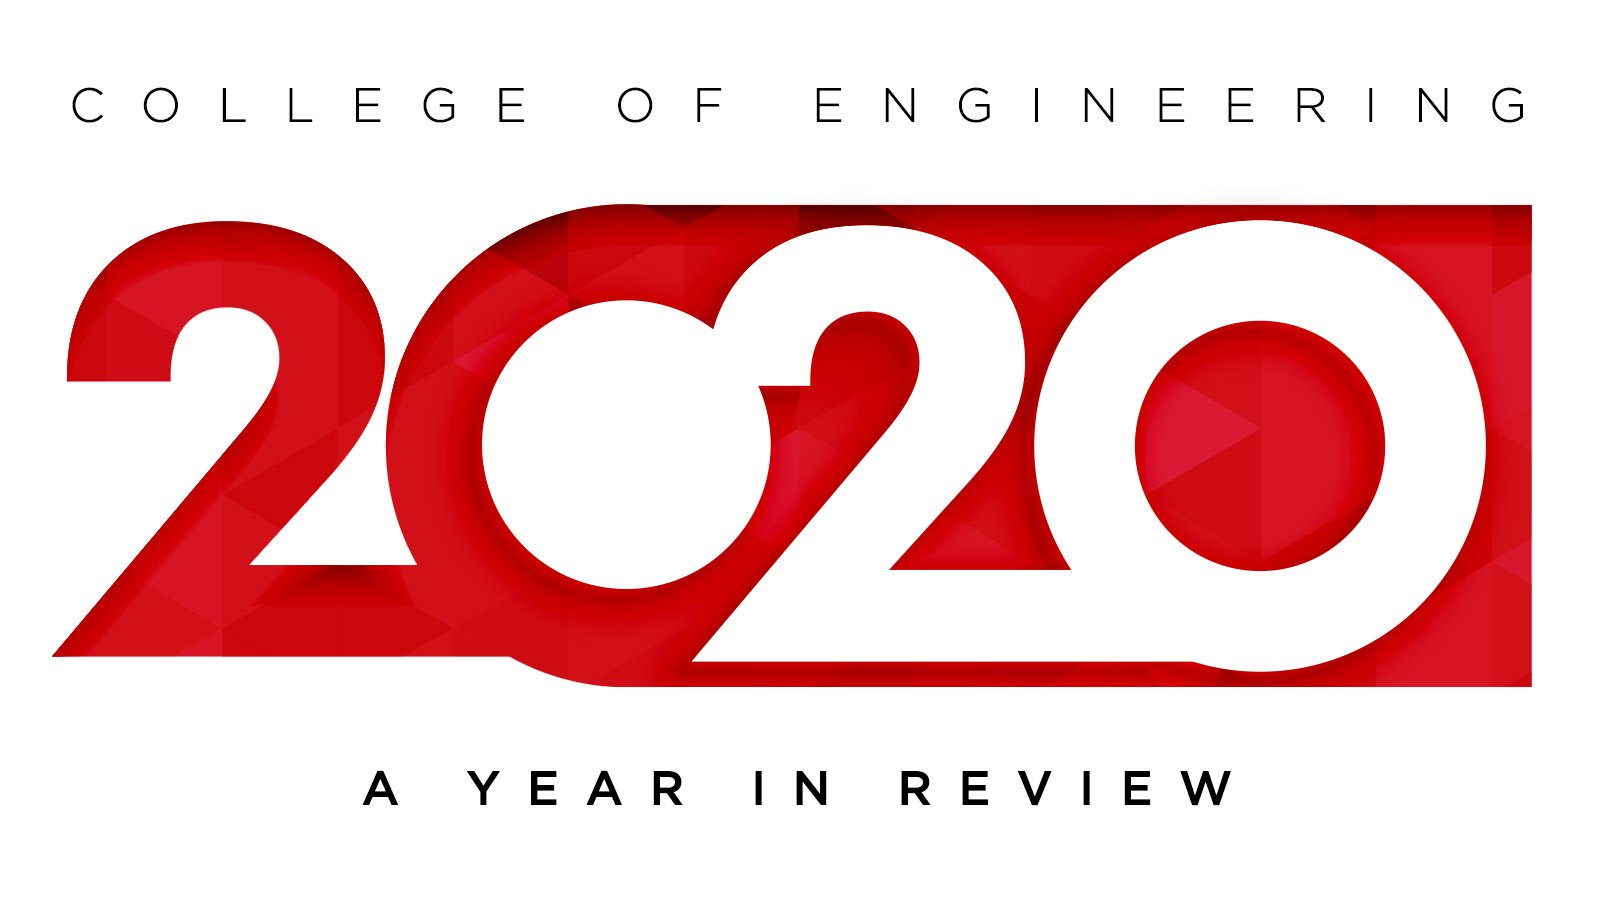 College of Engineering 2020 Year in Review.